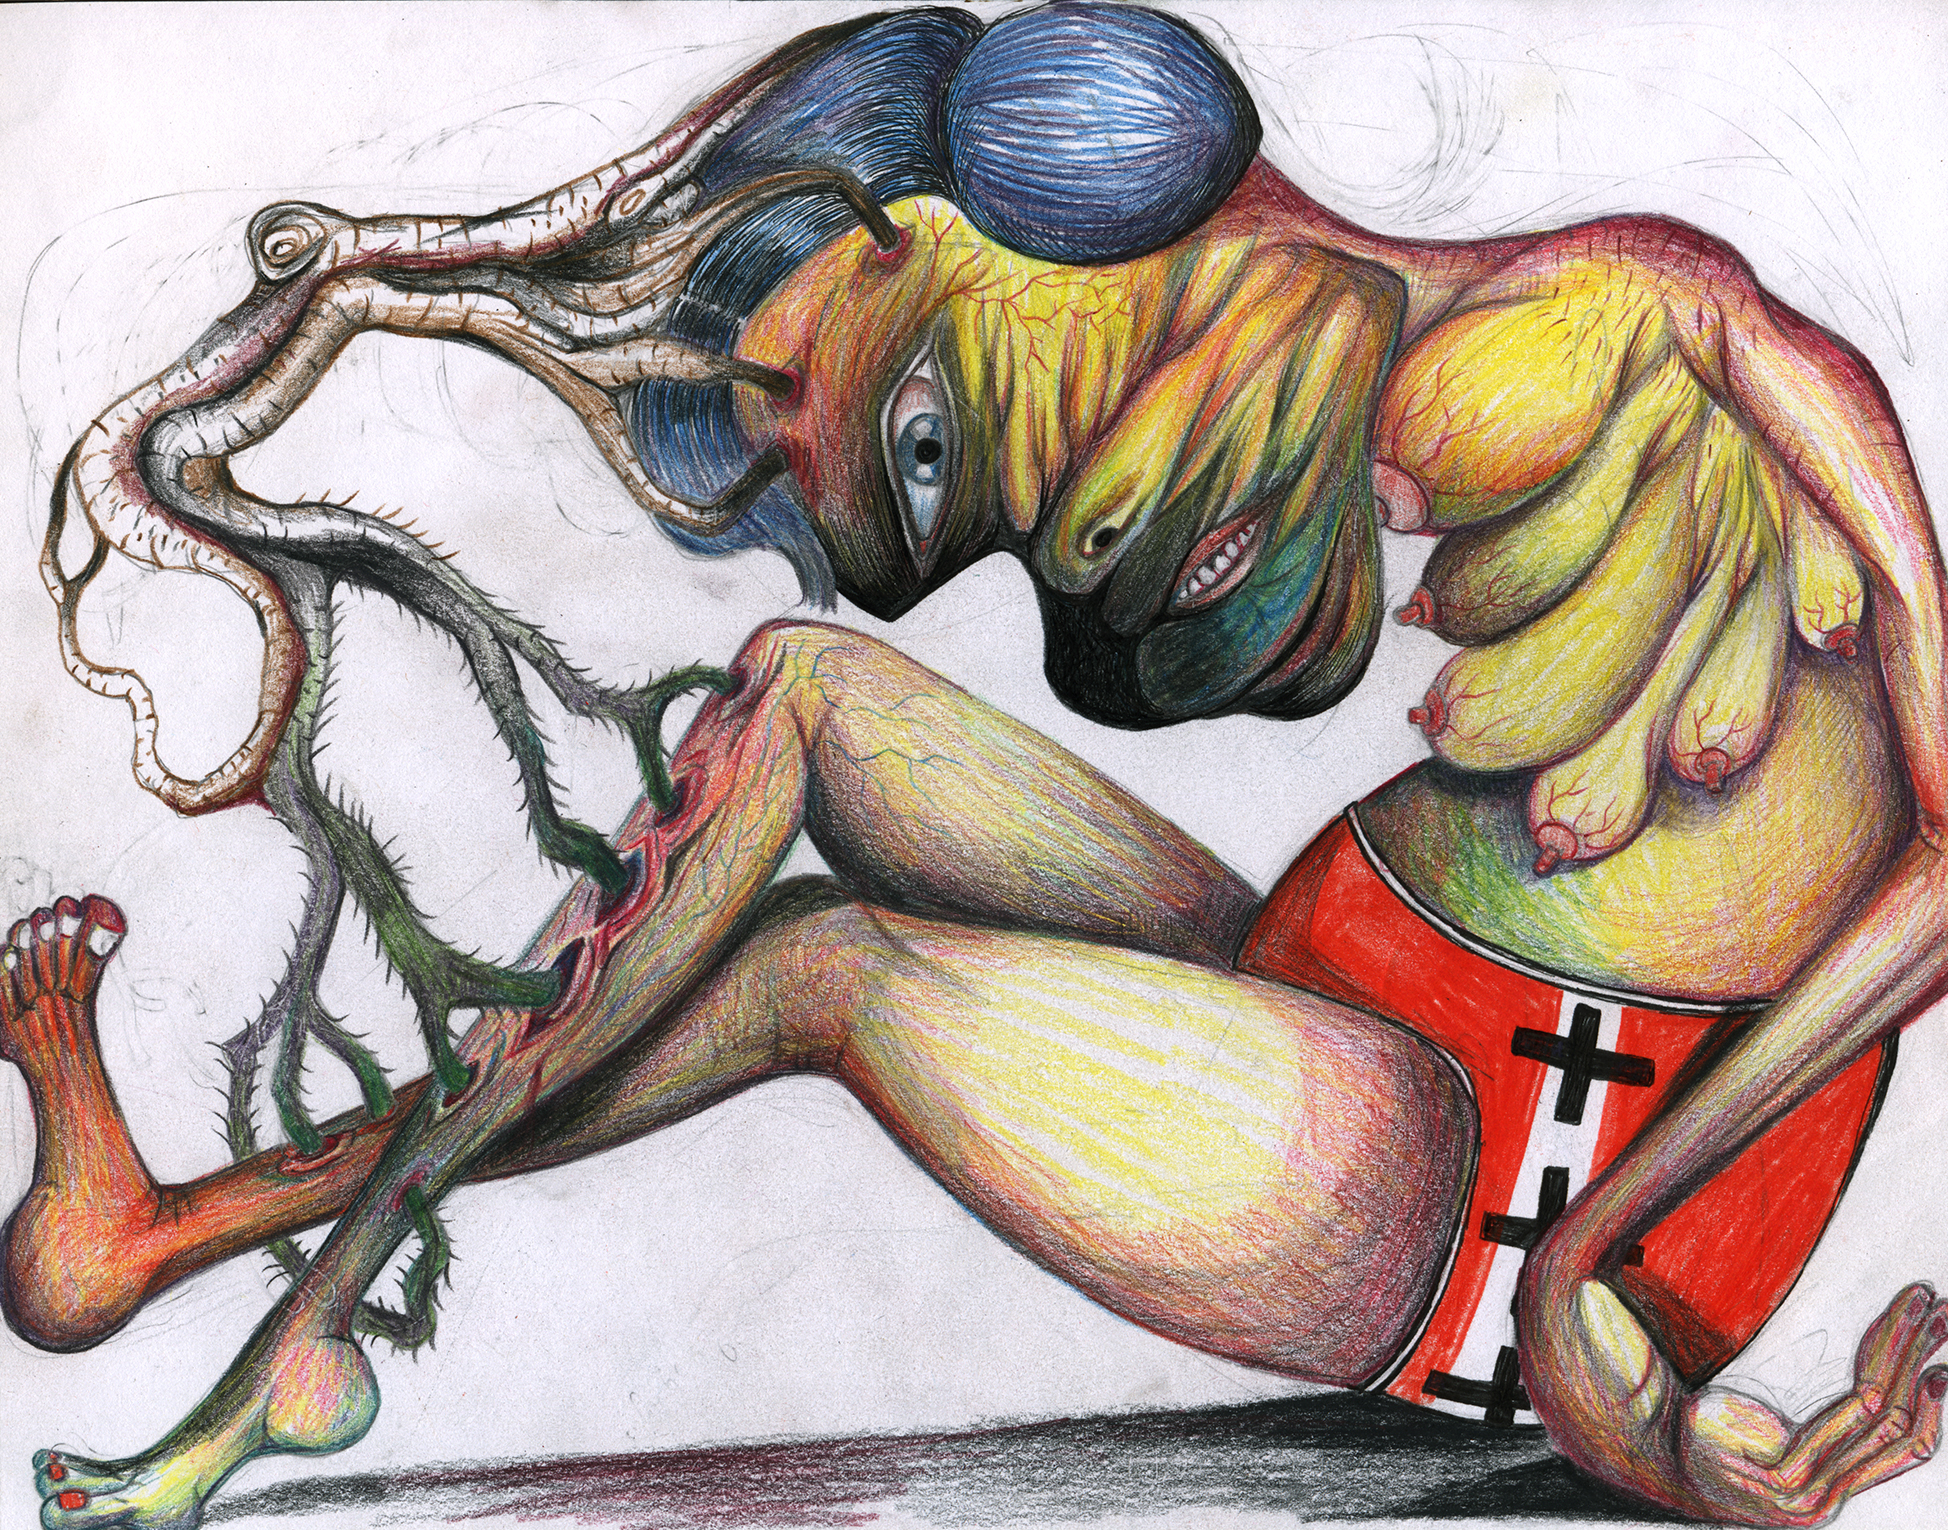 """Florine after being penetrated by a tree,becomes pregnant and grows 6 breast, 11""""x 8"""", color pencil on paper"""